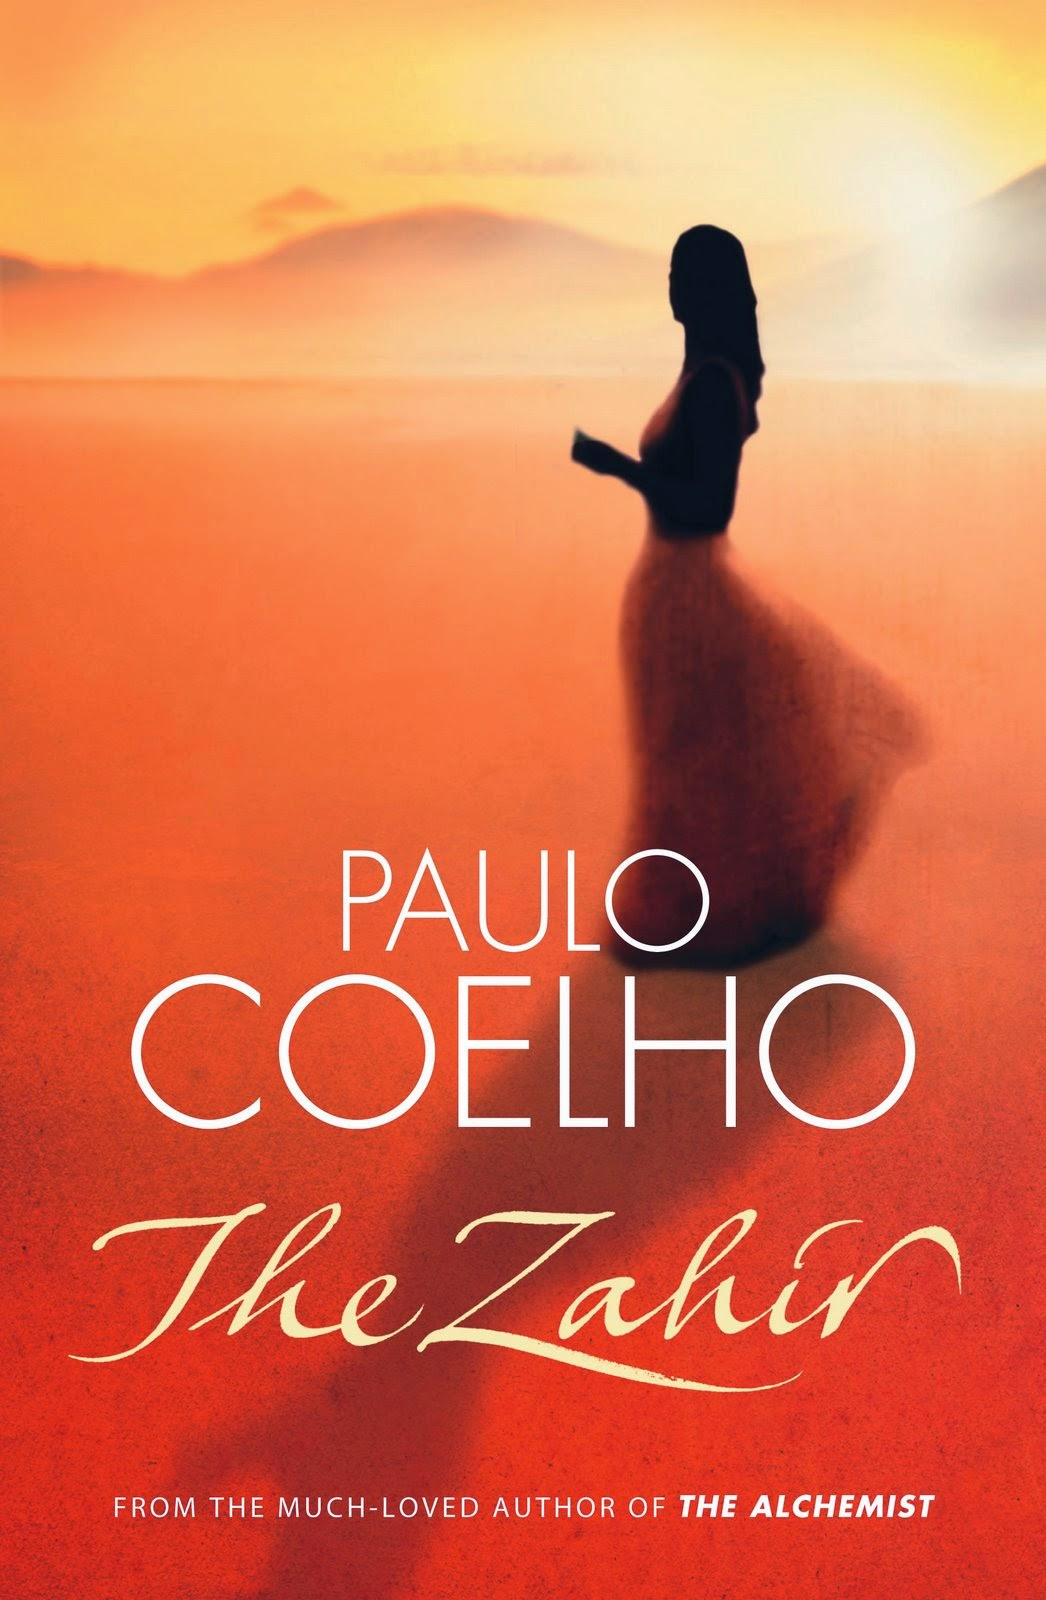 bit of everything search after the alchemist by paulo coelho the zahir was my second book the book is written from the point of view of un d celebrity author who talks